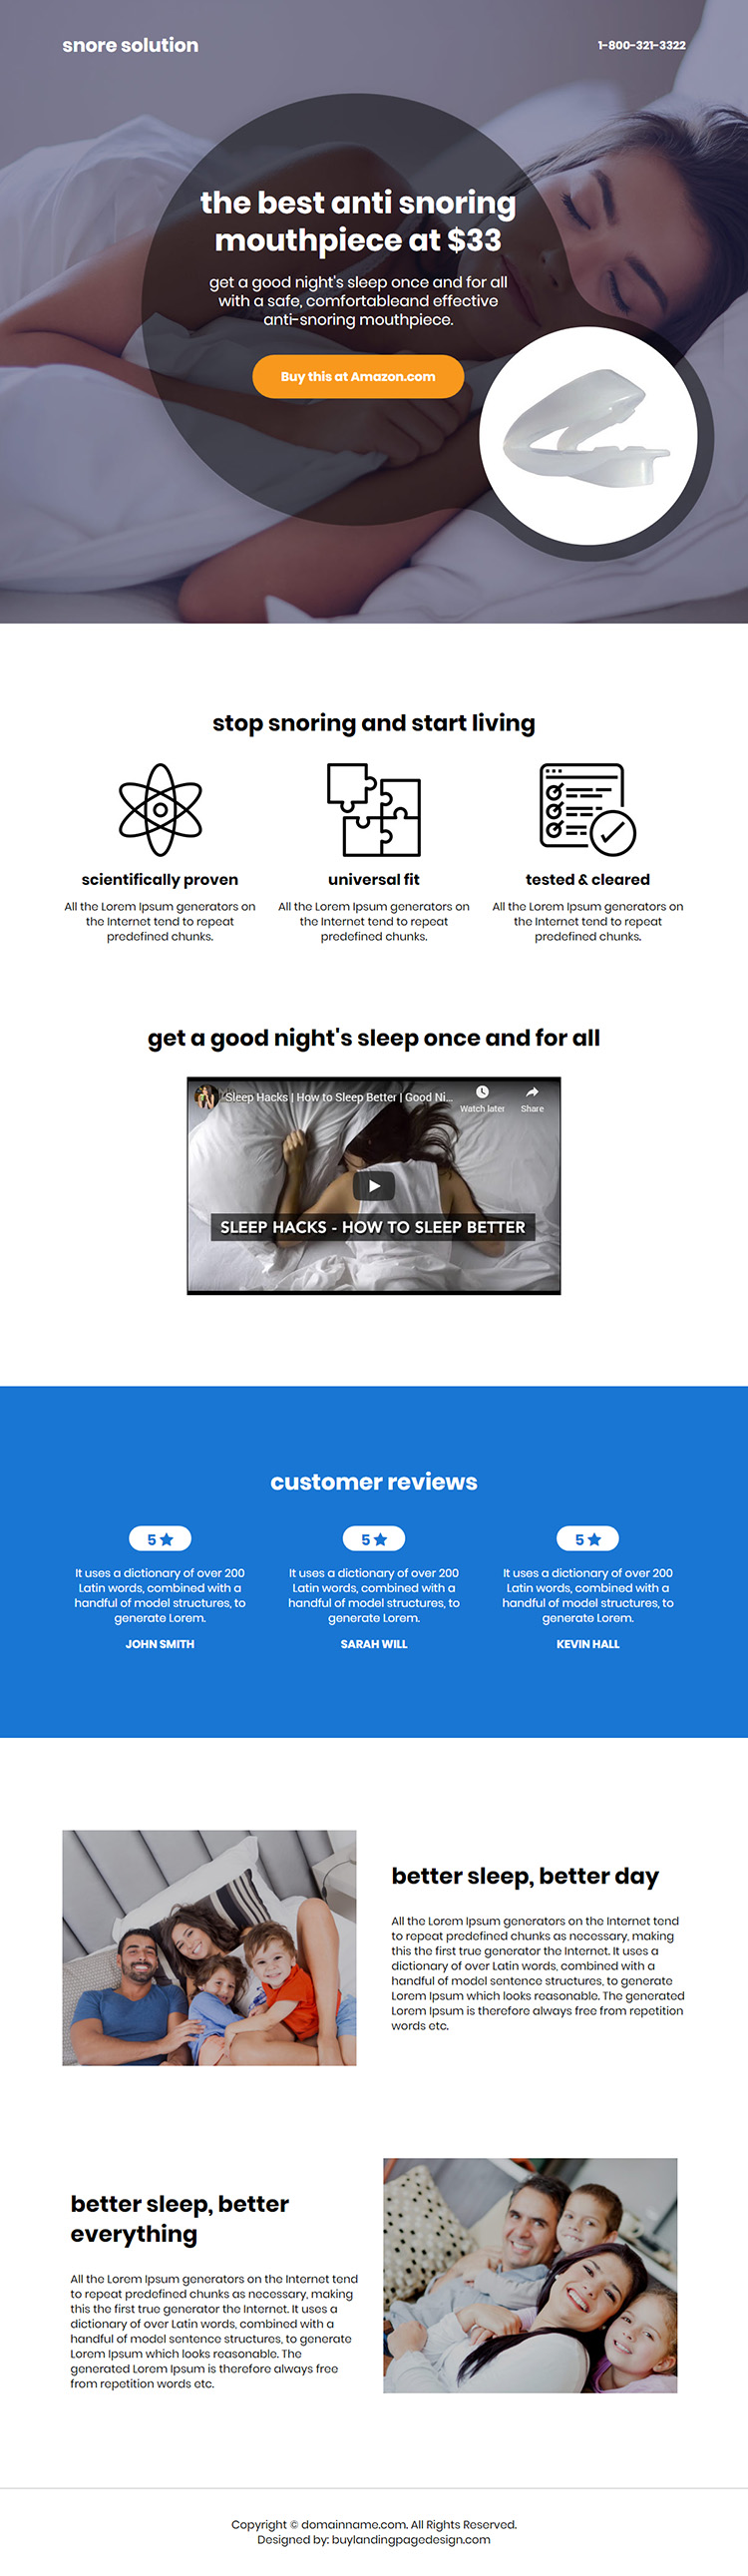 anti snoring mouthpiece selling responsive call to action landing page design